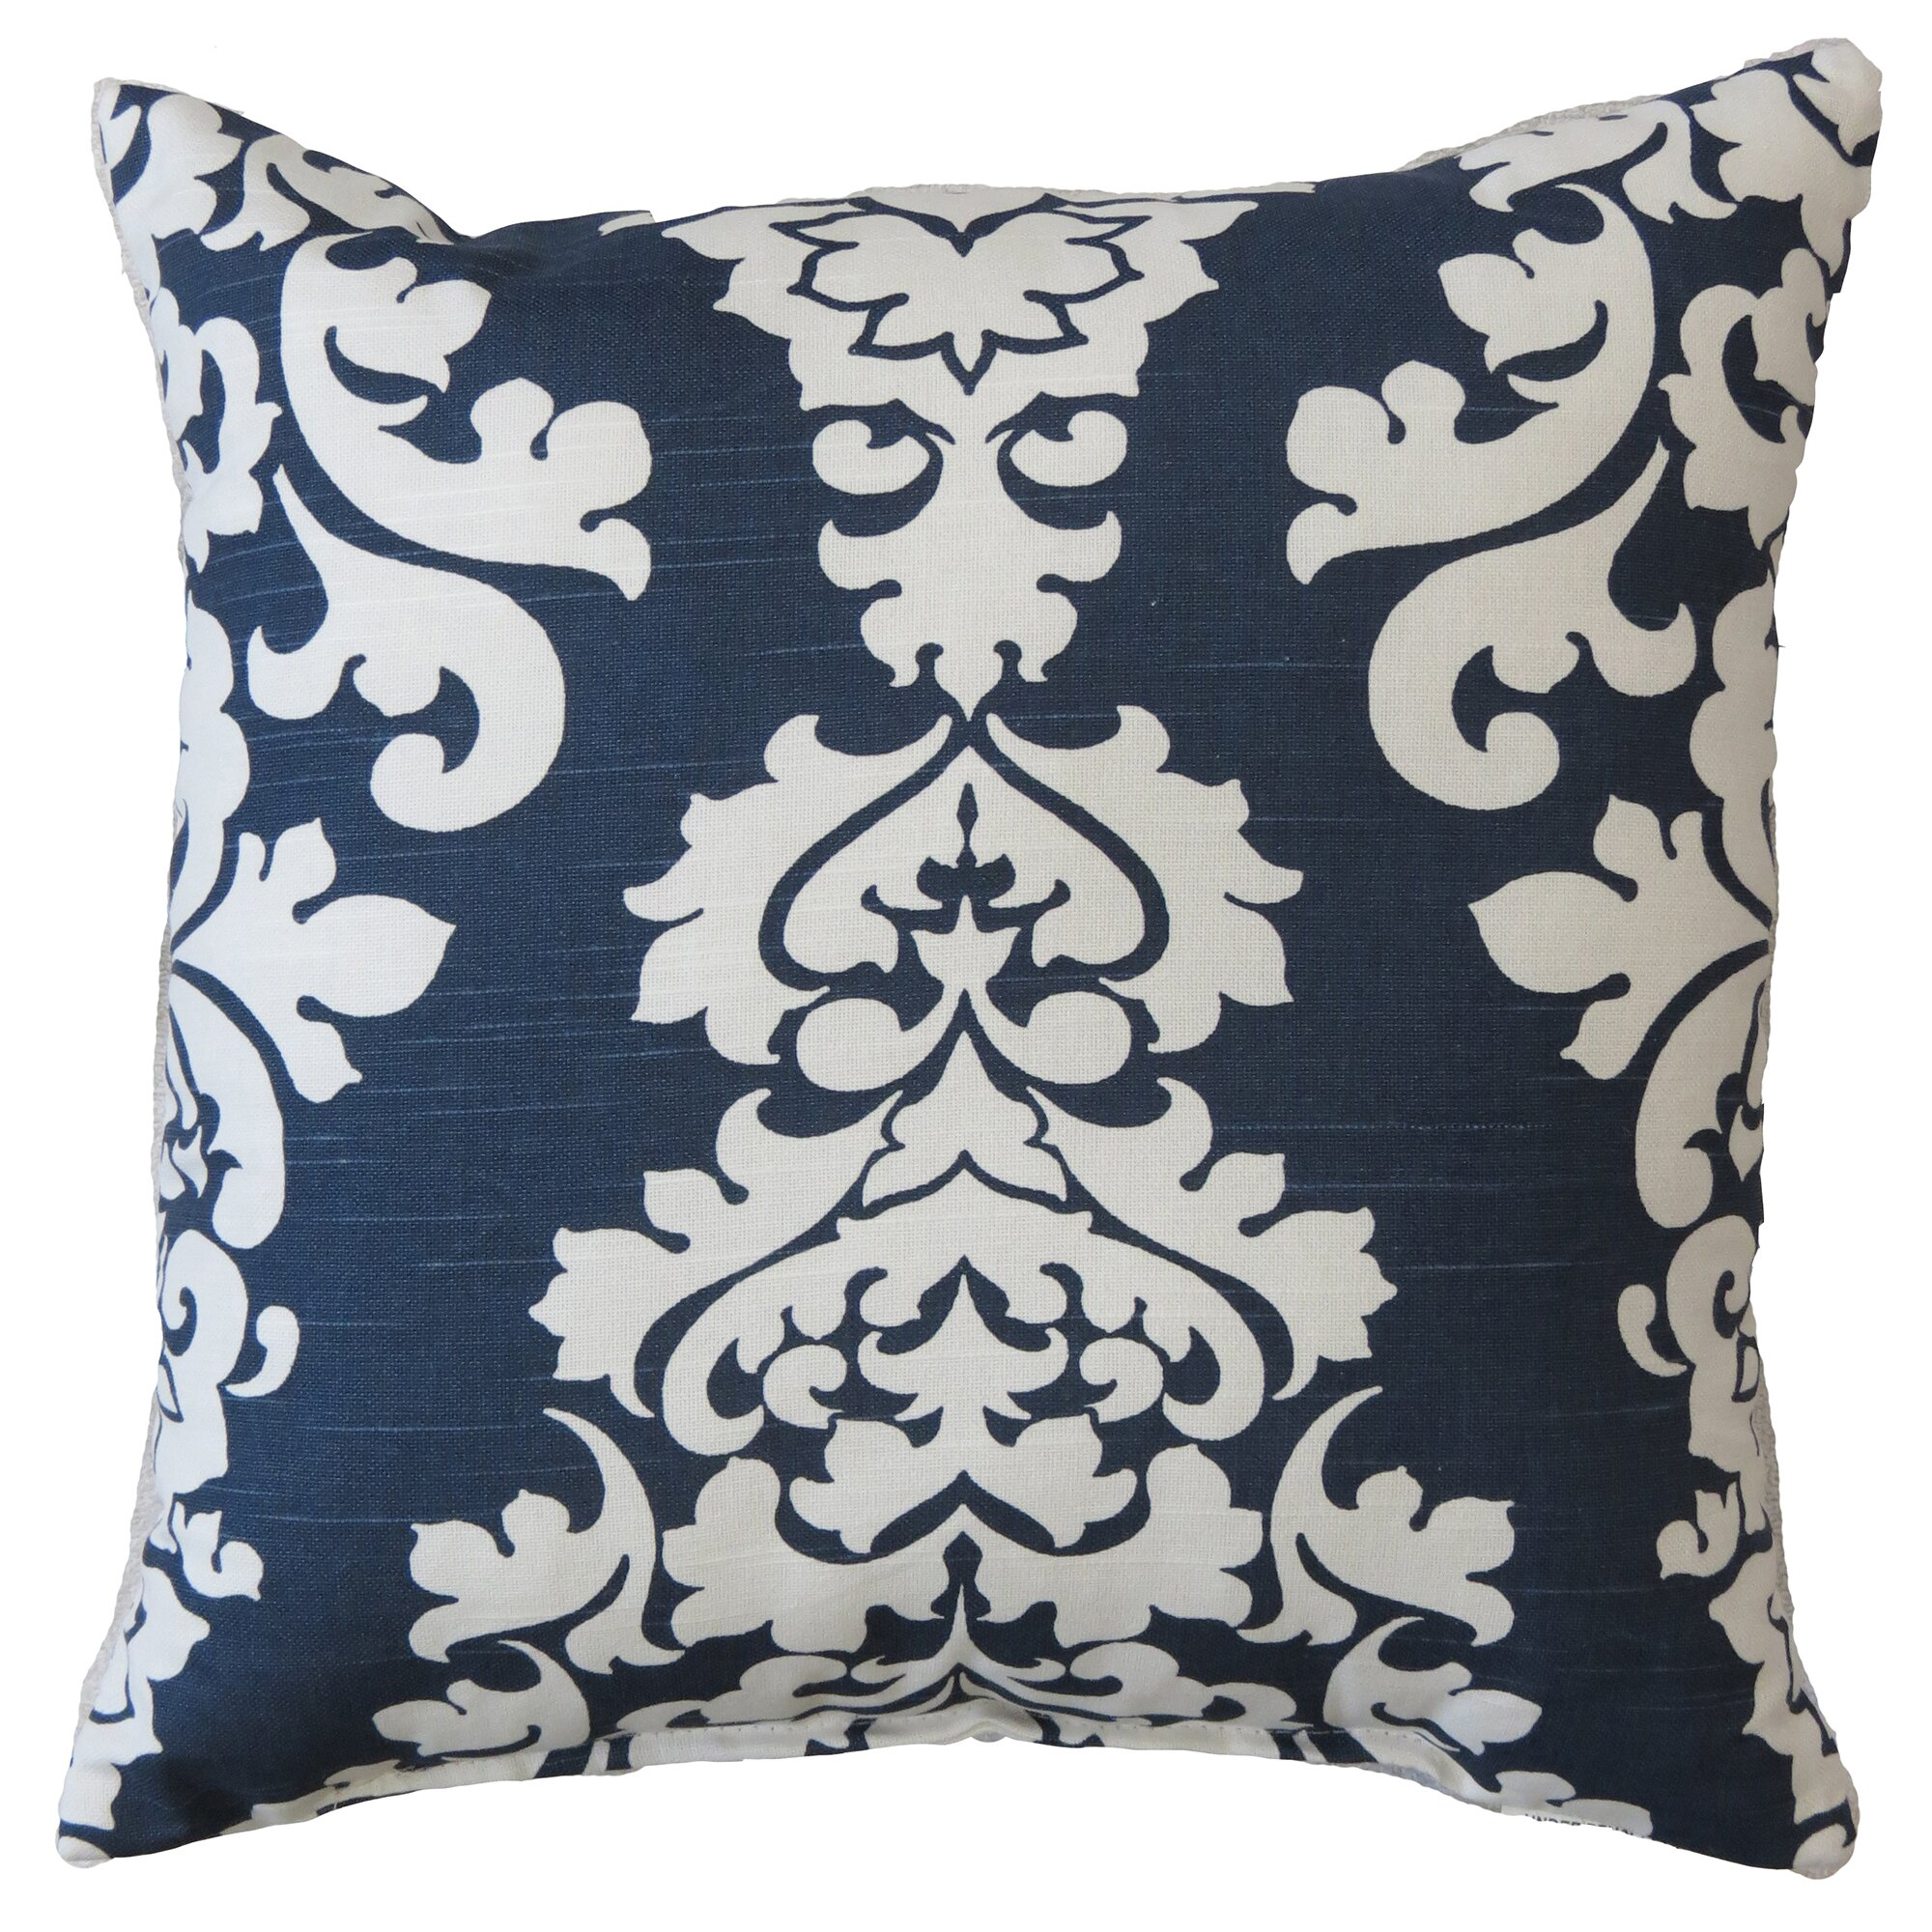 Throw Pillows Damask : Three Posts Palmdale Indoor/Outdoor Damask Cotton Throw Pillow & Reviews Wayfair